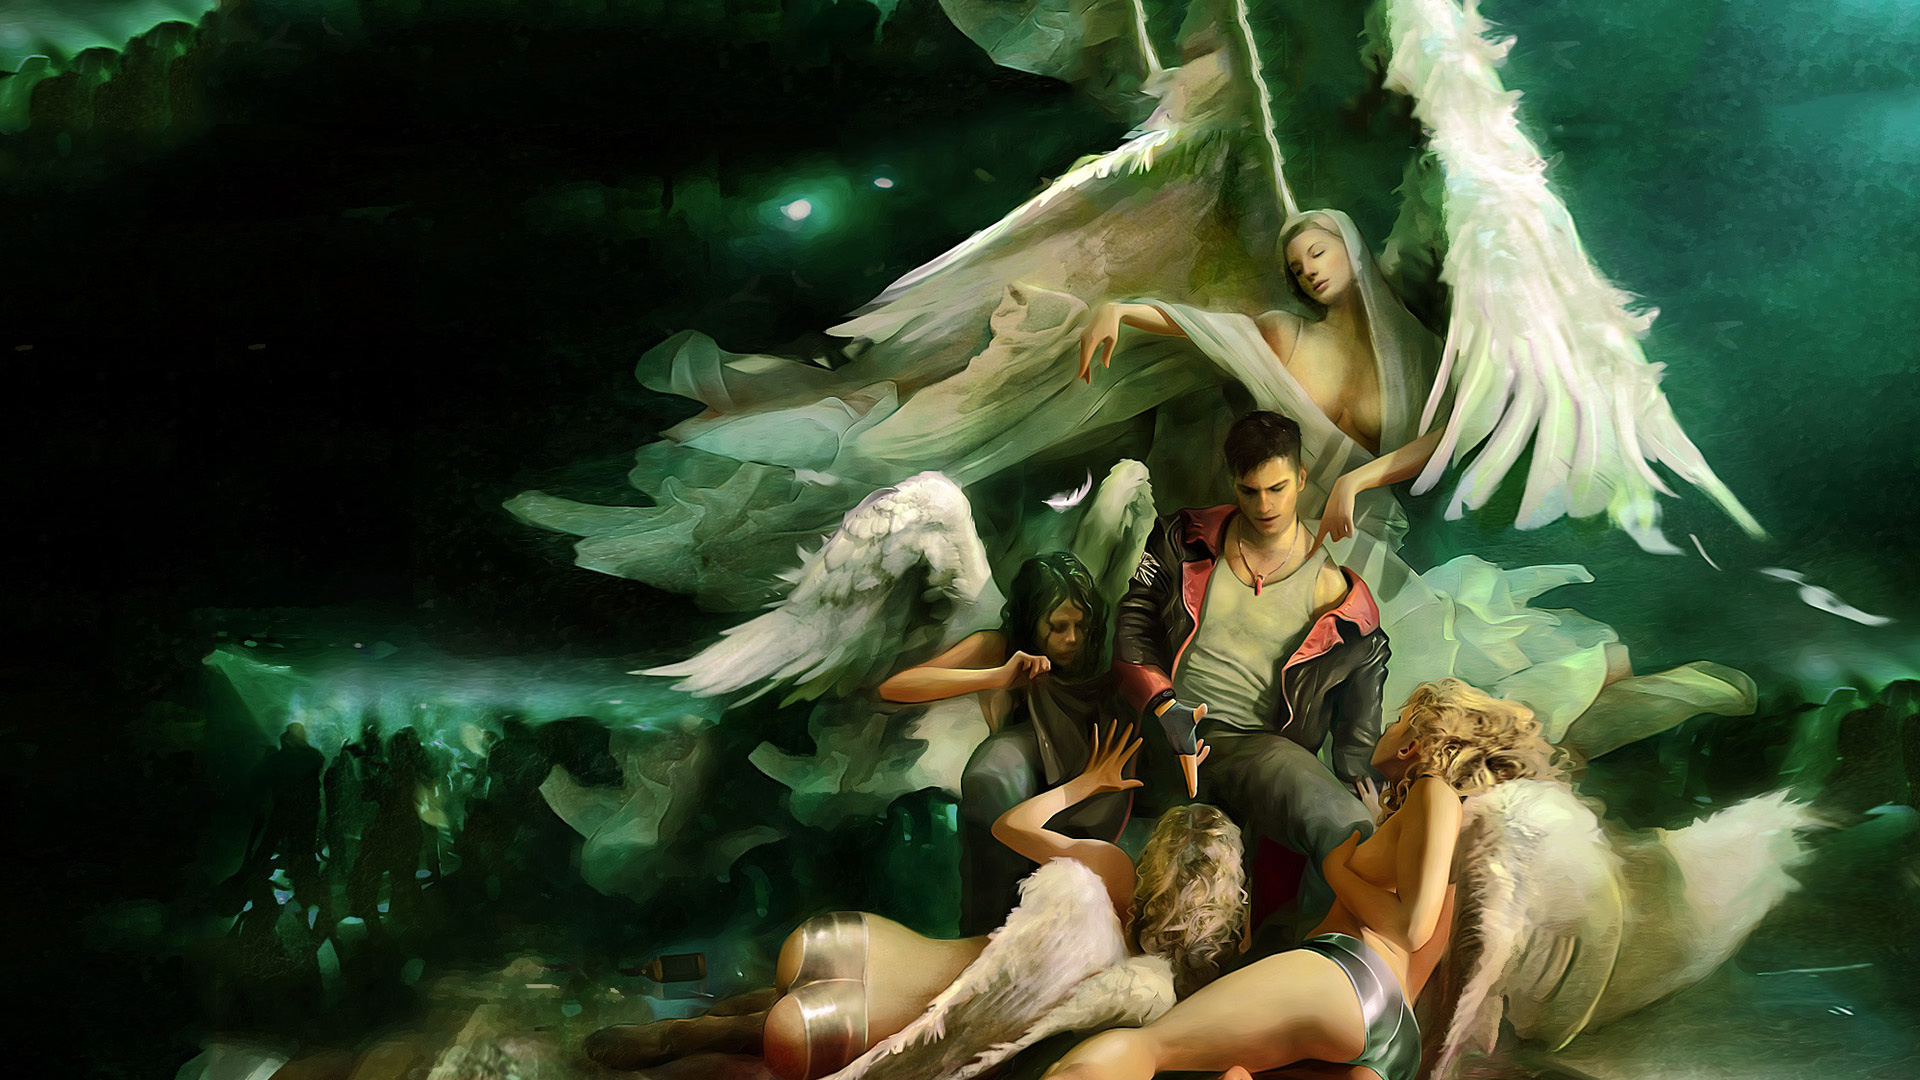 wallpapers devil may cry - photo #20